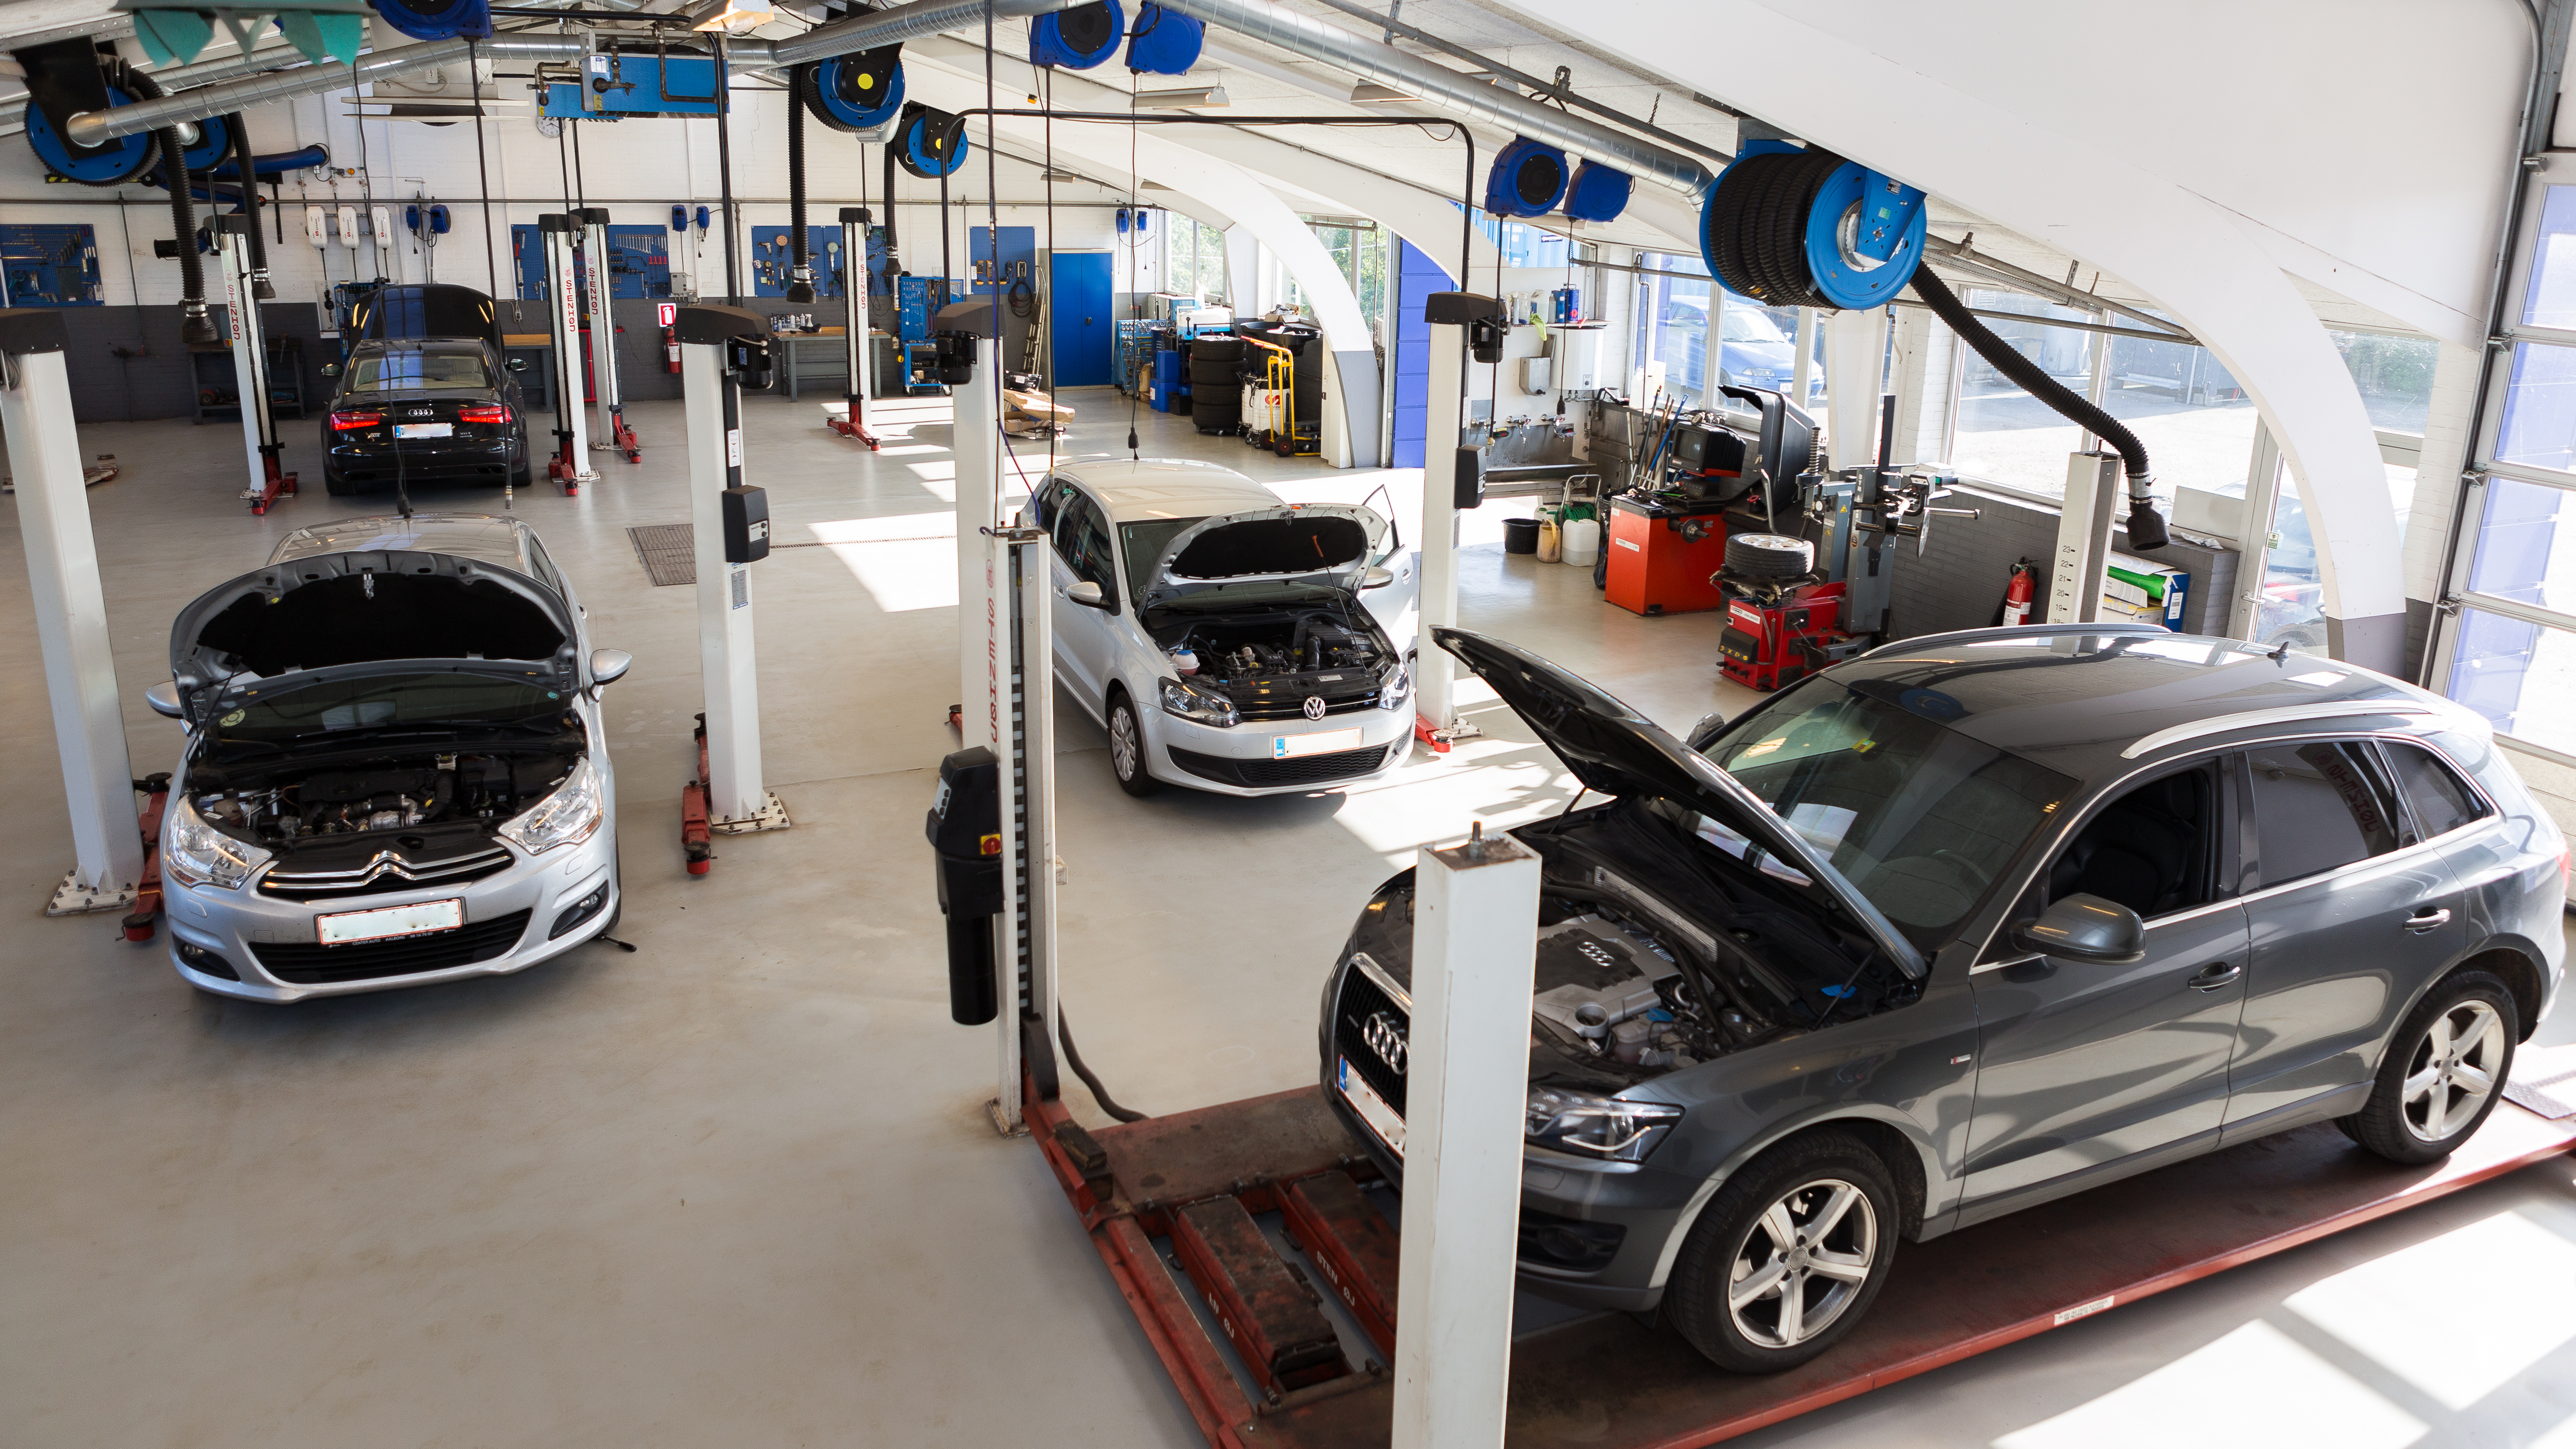 Picture of: Autoreparation Mekaniker Autovaerksted Aalborg Center Auto Aps